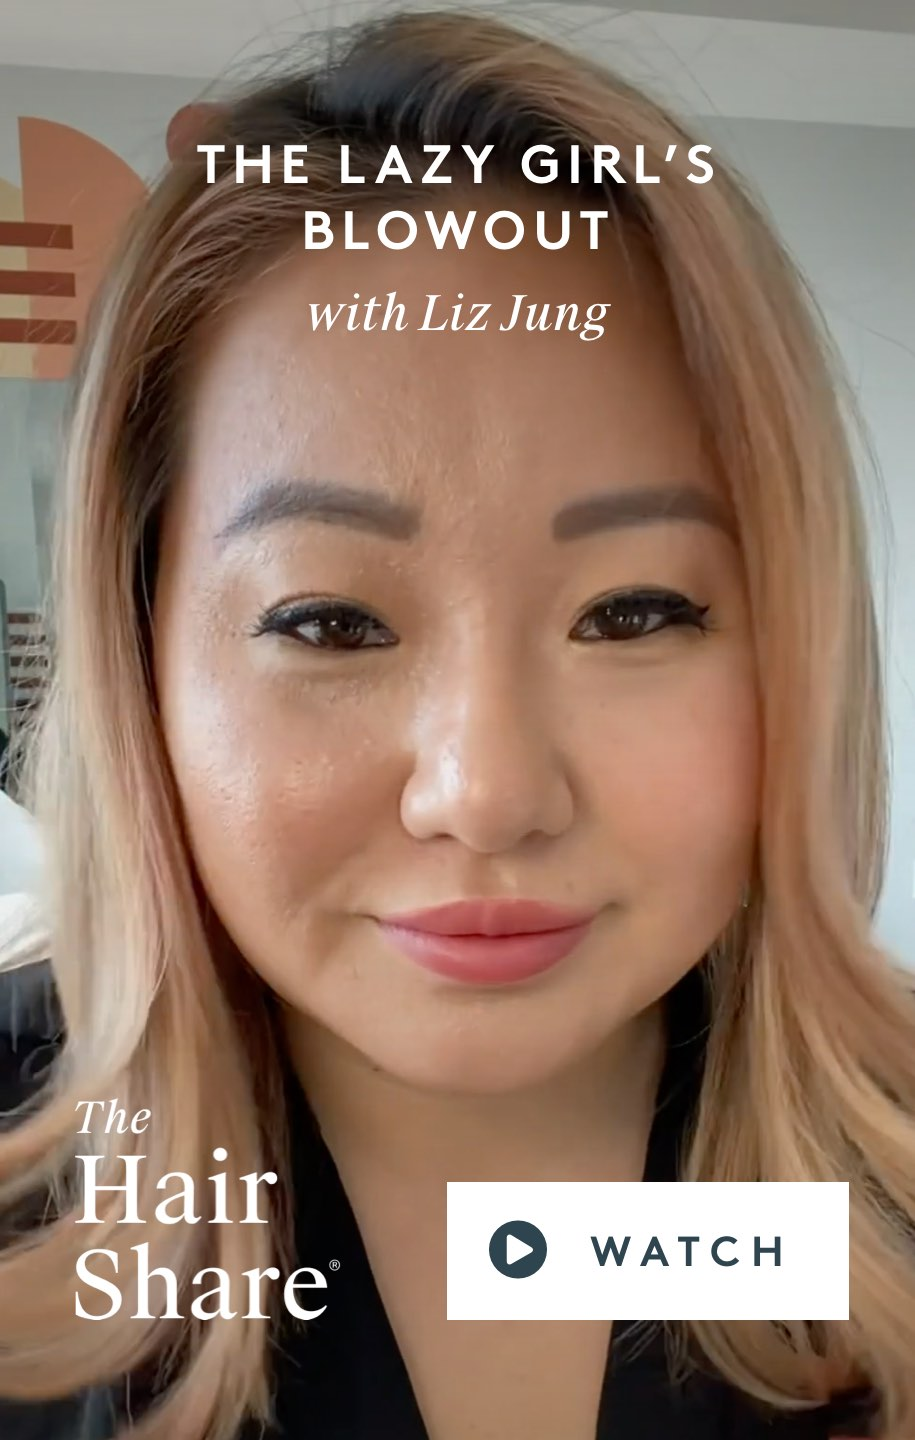 The Lazy Girl's Blowout With Liz Jung